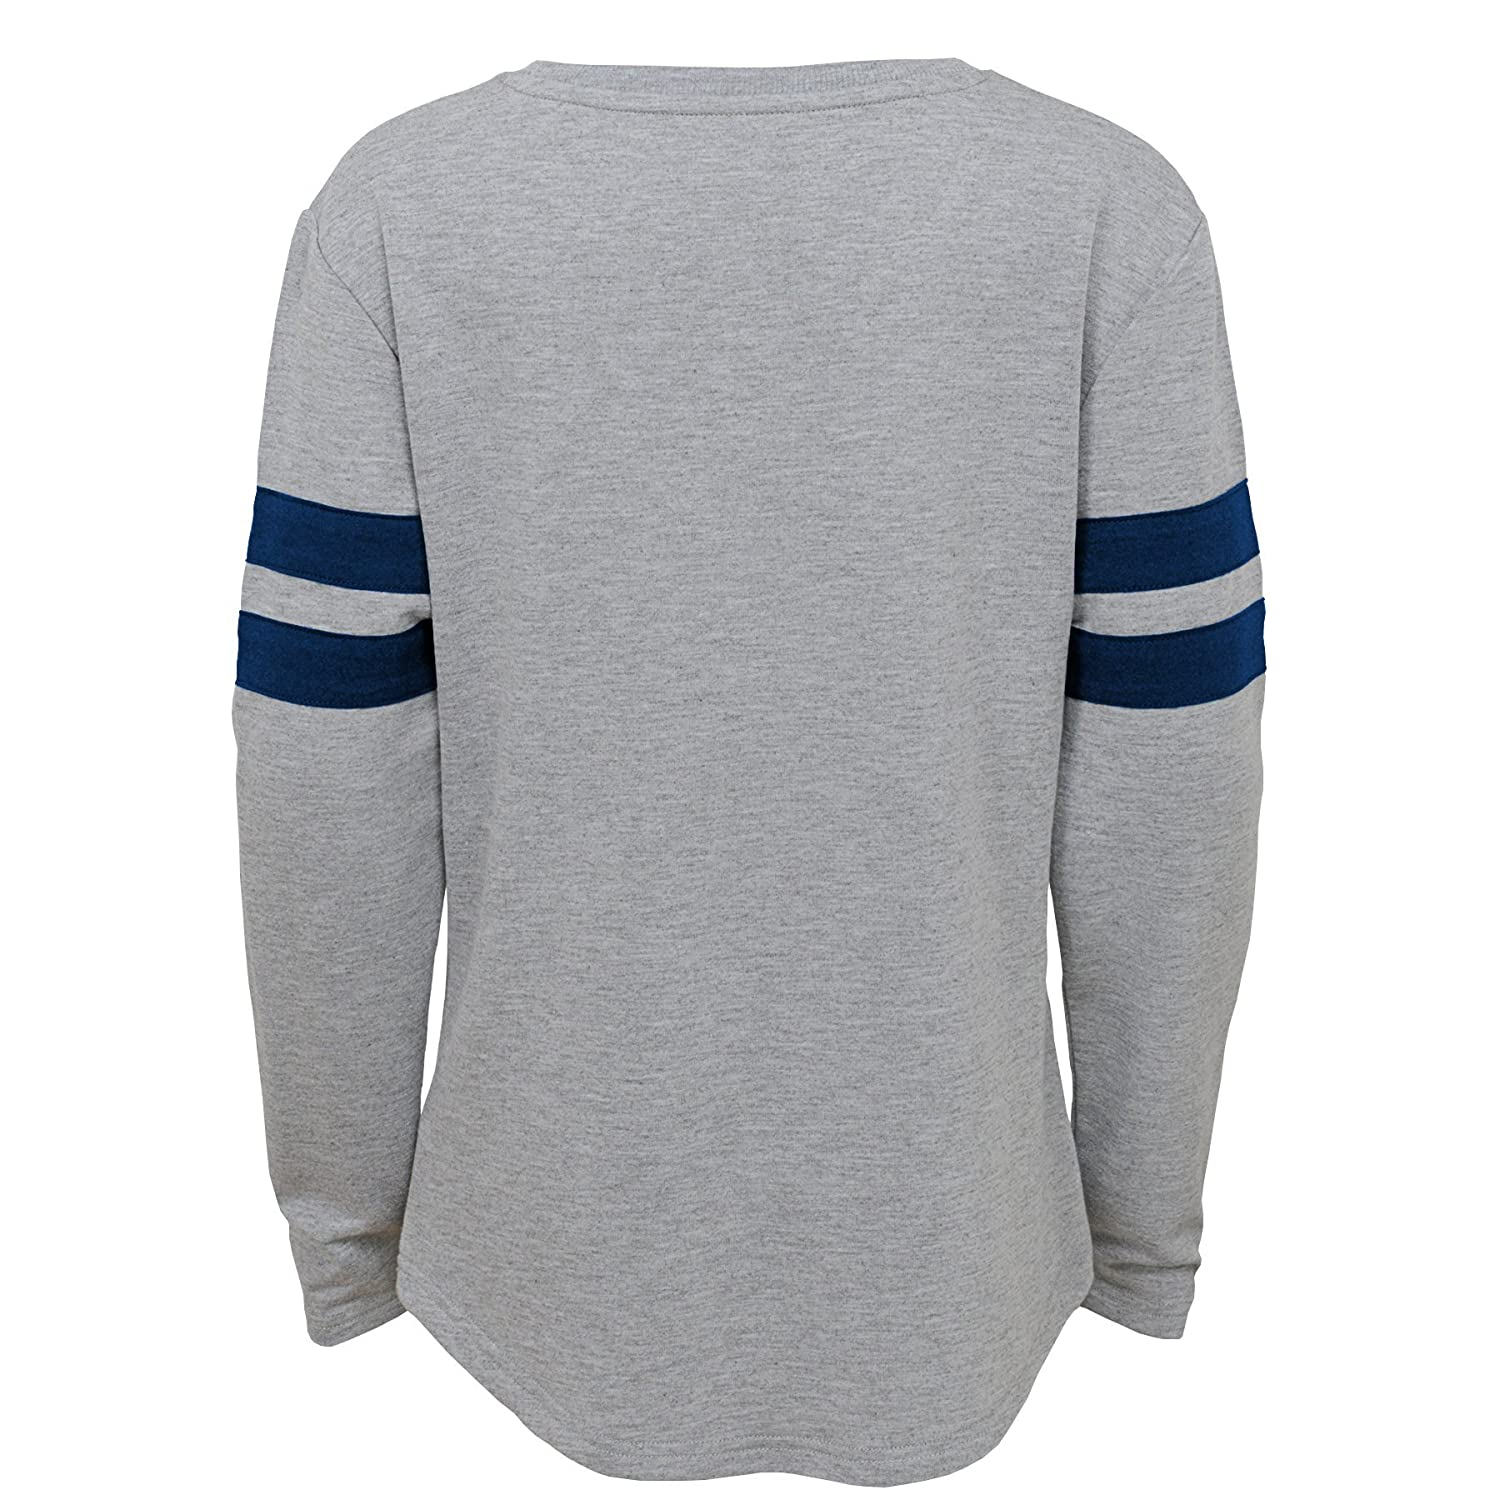 Outerstuff NFL NFL Seattle Seahawks Youth Girls Field Armor Long Sleeve Dolman Tee Heather Grey 7-8 Youth Small